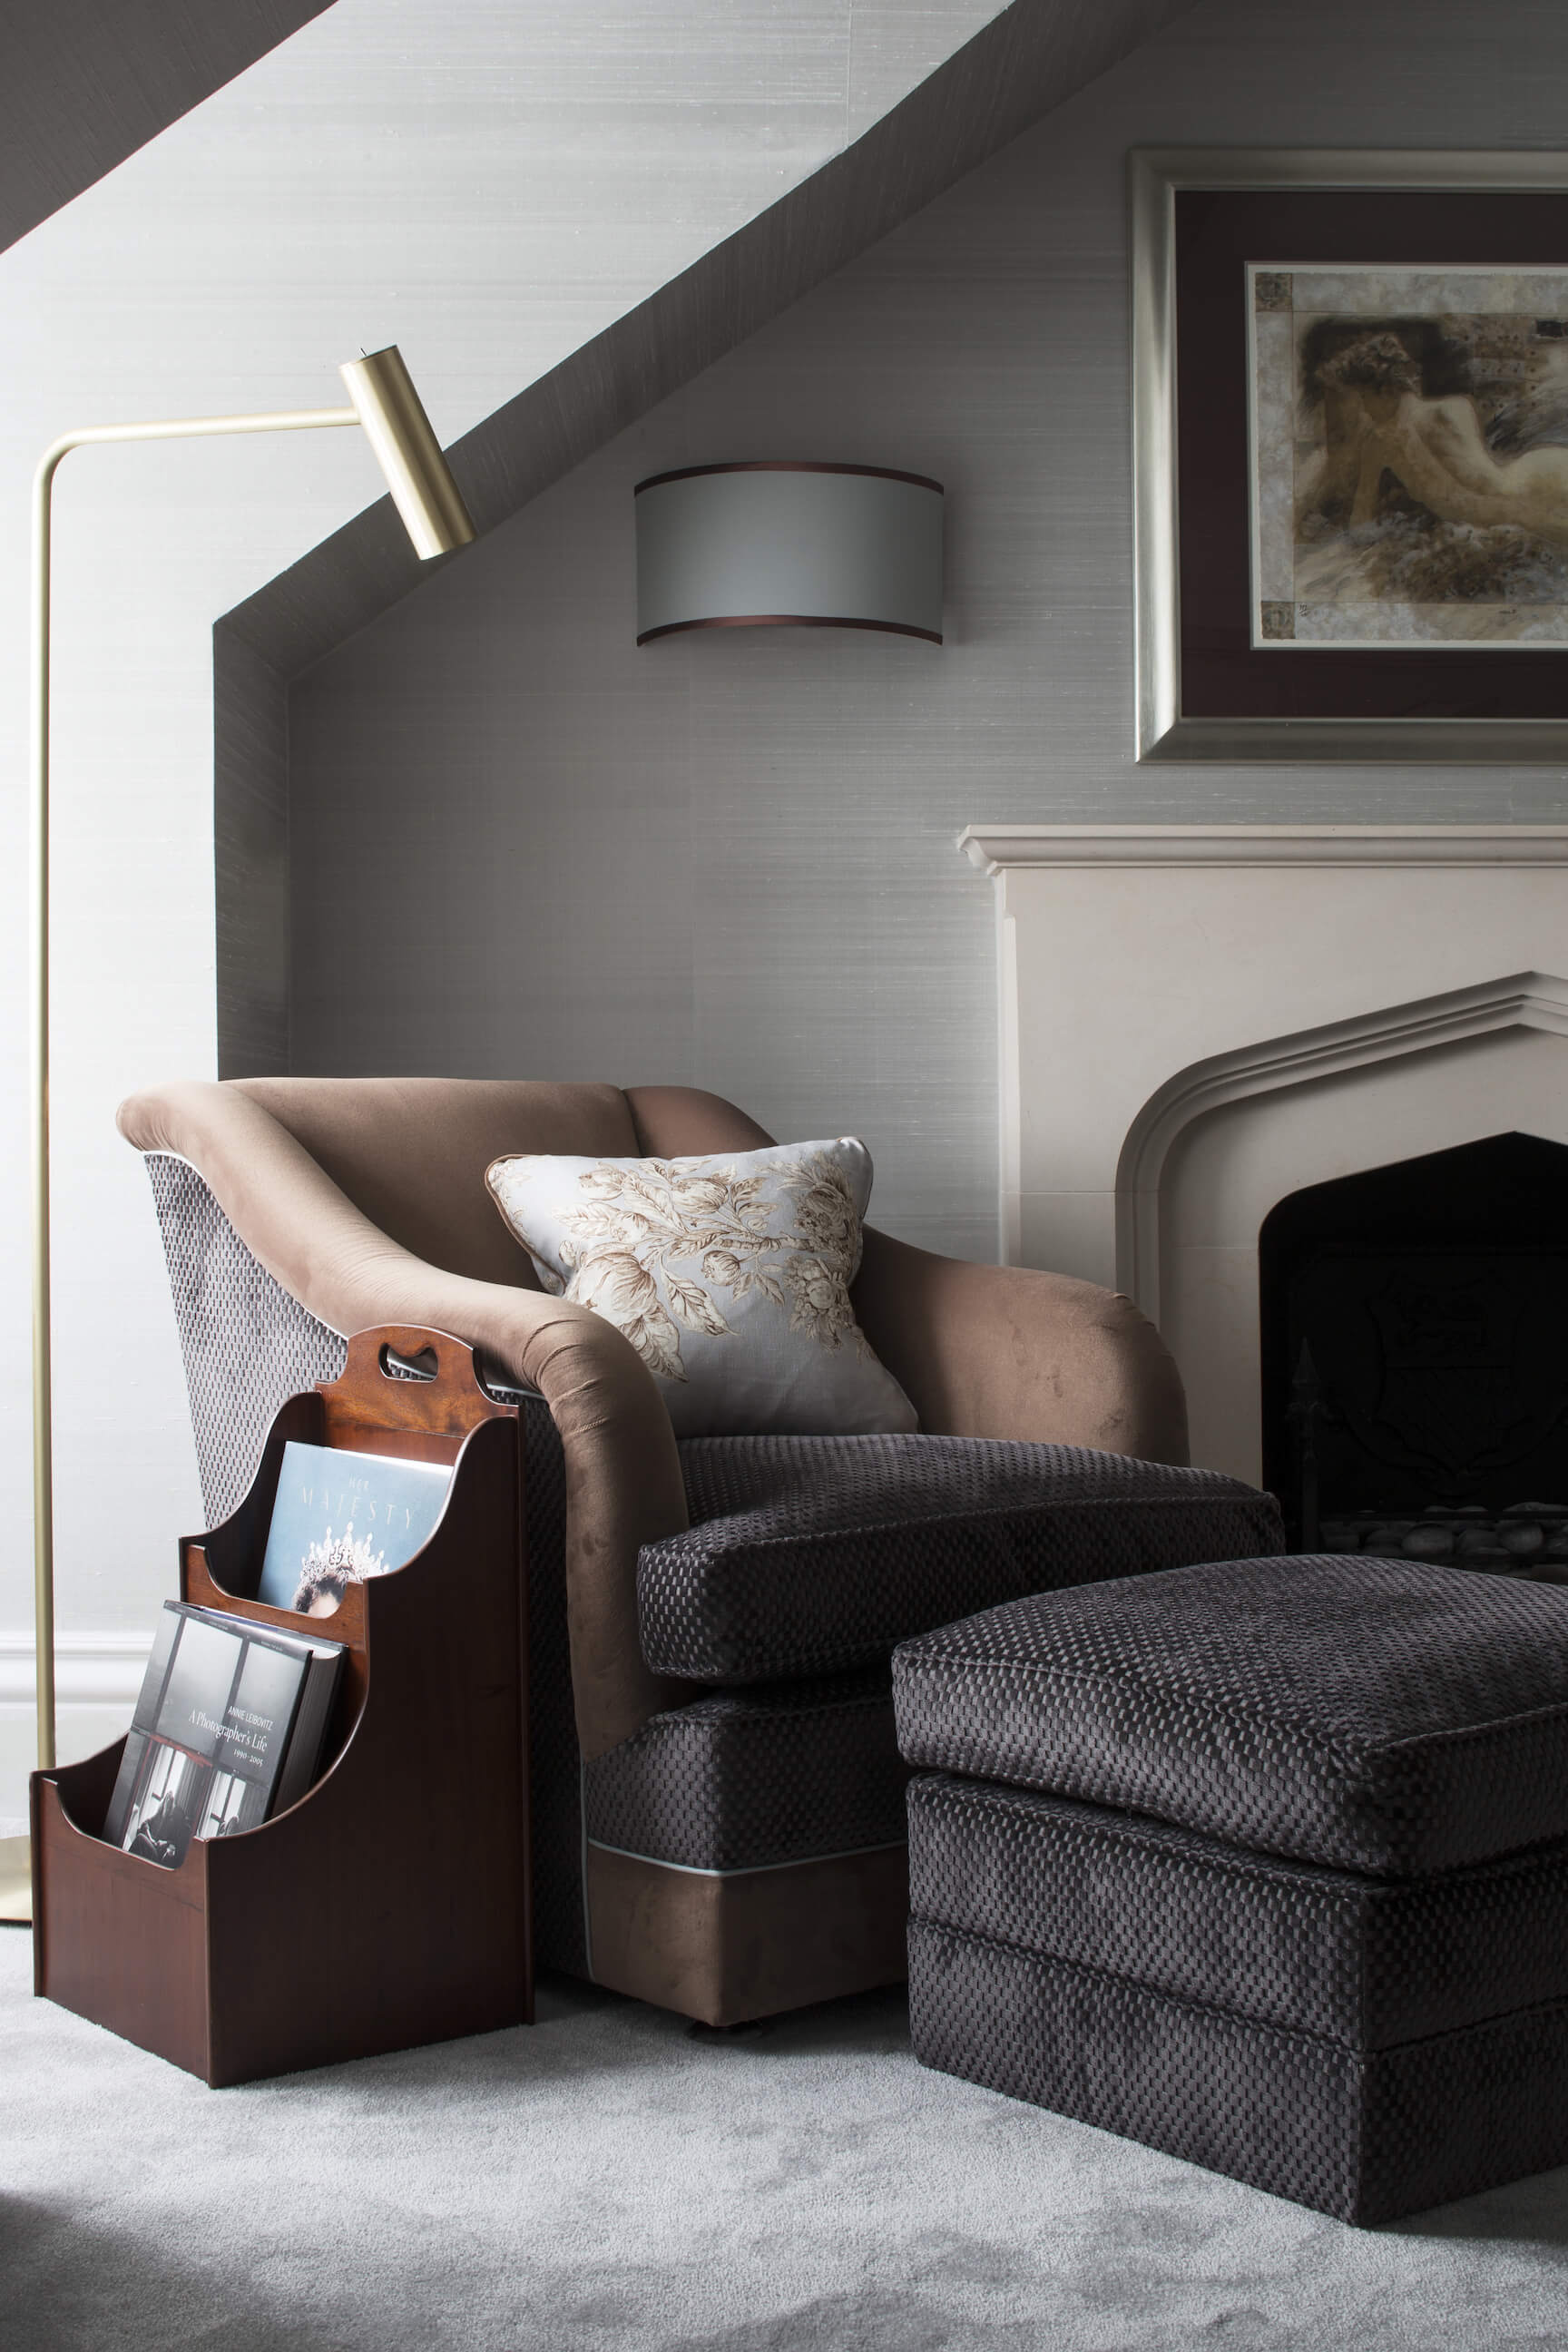 Beside the primary bedroom fireplace, we find this rich multi-textured club chair with matching ottoman, below a gold hued floor lamp and half-cylinder sconce.